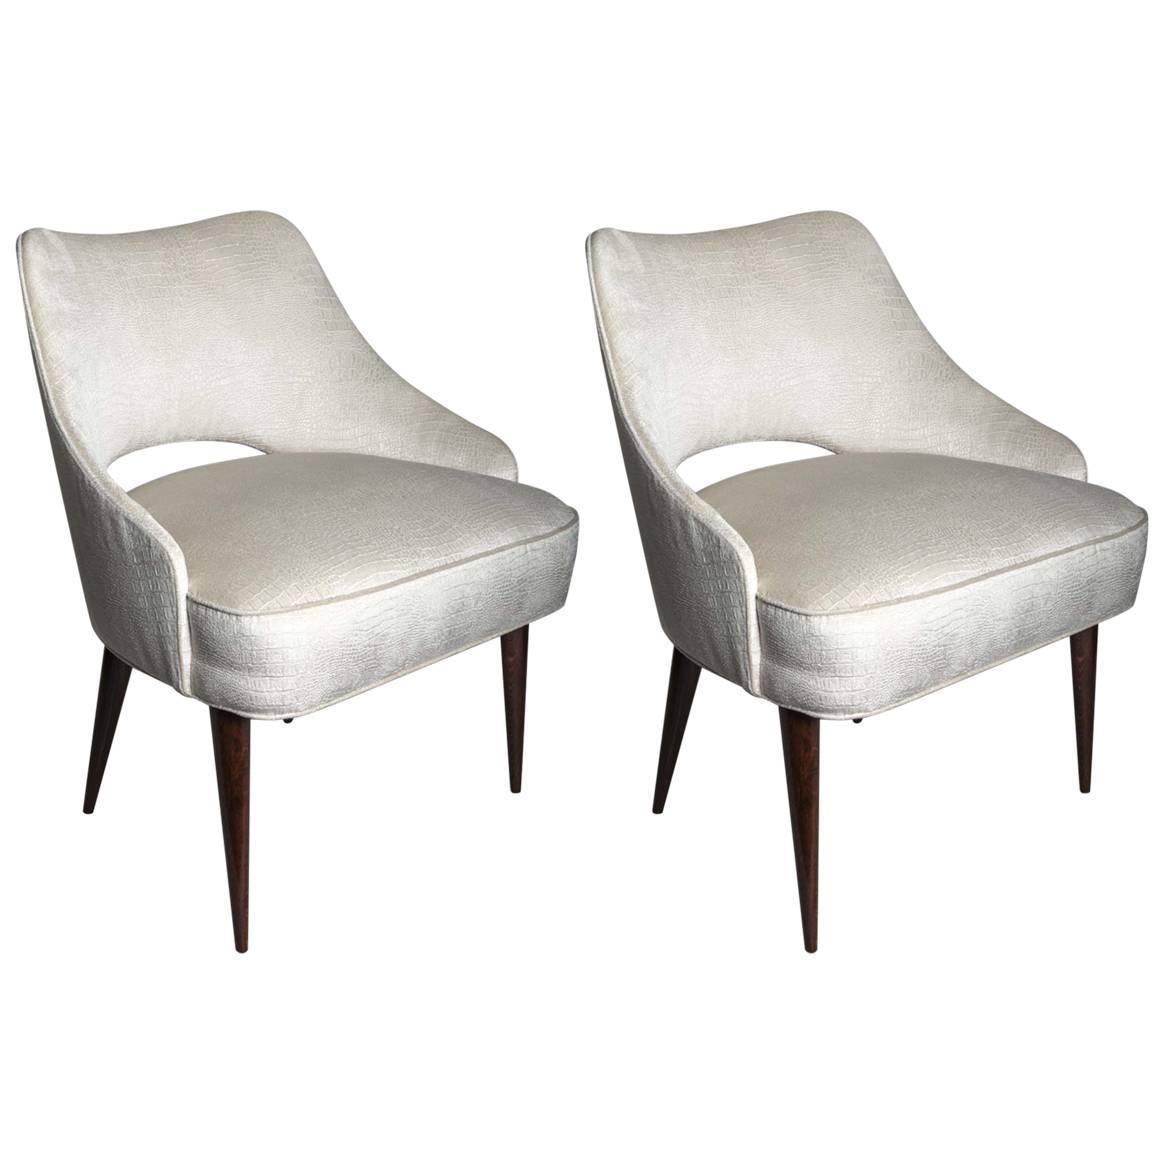 Petite Chairs Pair Of Petite Upholstered Chairs At 1stdibs